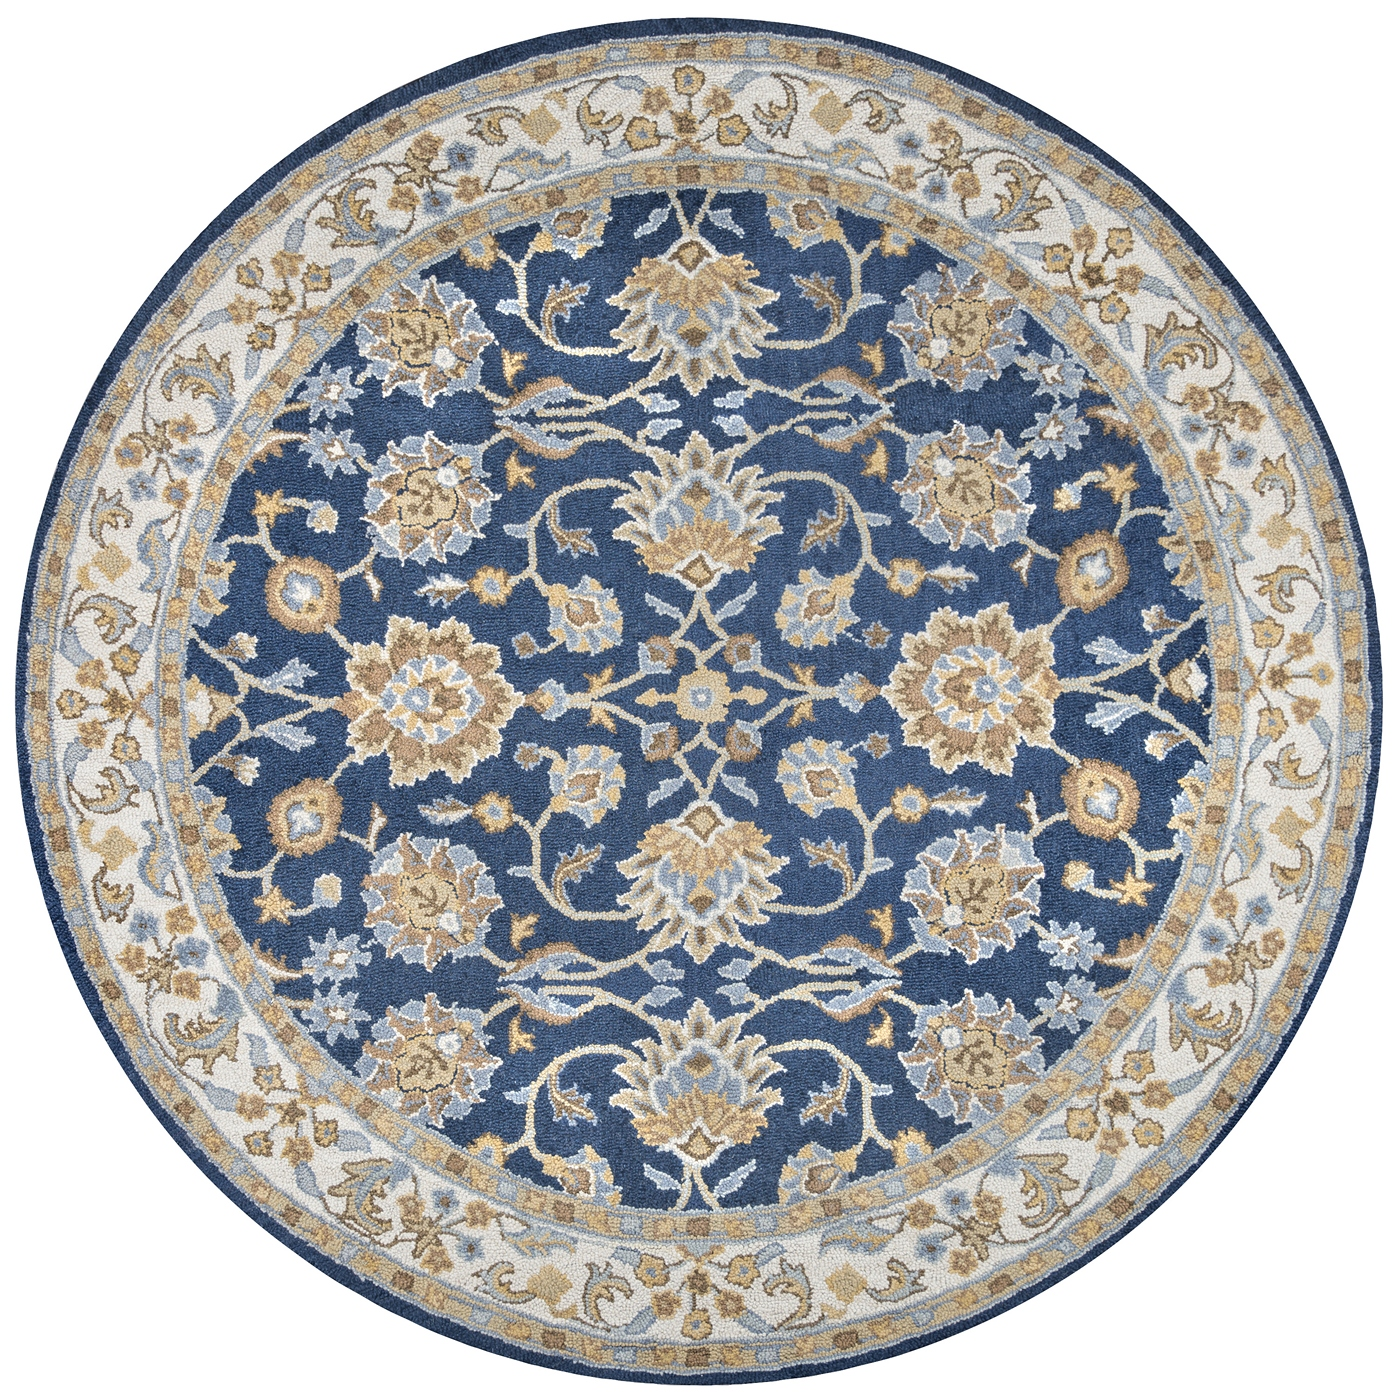 ashlyn traditional border new zealand wool round rug in blue ivory 10 39 x 10 39. Black Bedroom Furniture Sets. Home Design Ideas